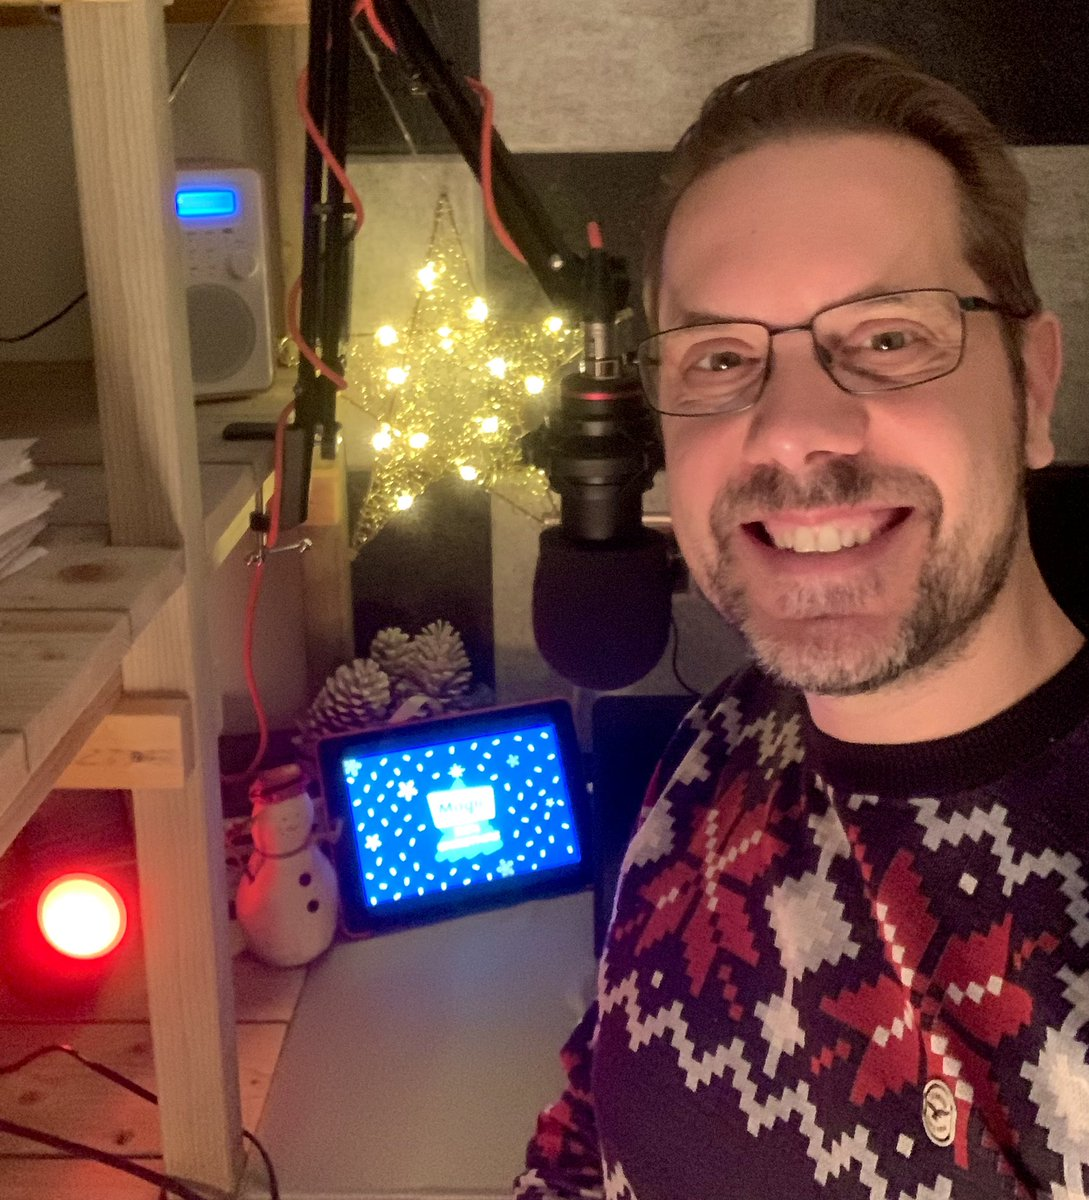 @PurpleDon1973 @magicfm Indeed! Welcome to my festive little studio! #TheShed @magicfm #MagicOfChristmas https://t.co/DlnMiVkTzR